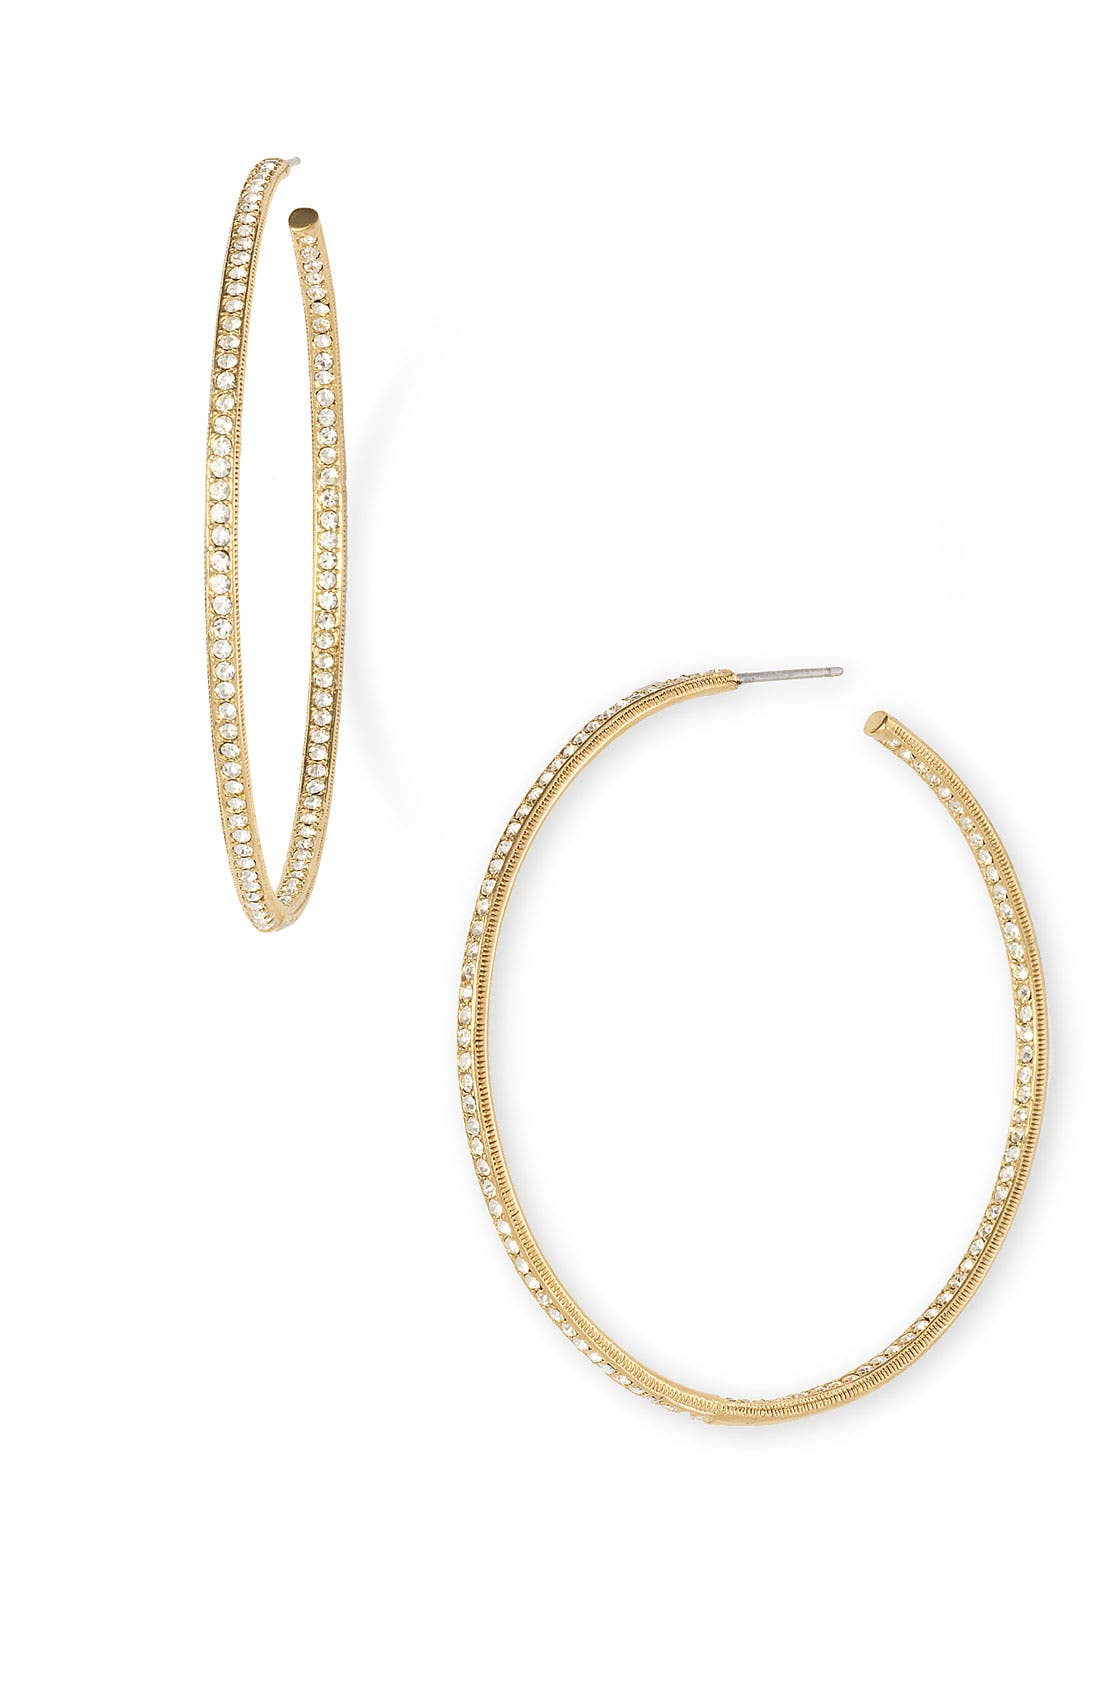 Alternate Image 1 Selected - Nadri Pavé Inside Out Hoop Earrings